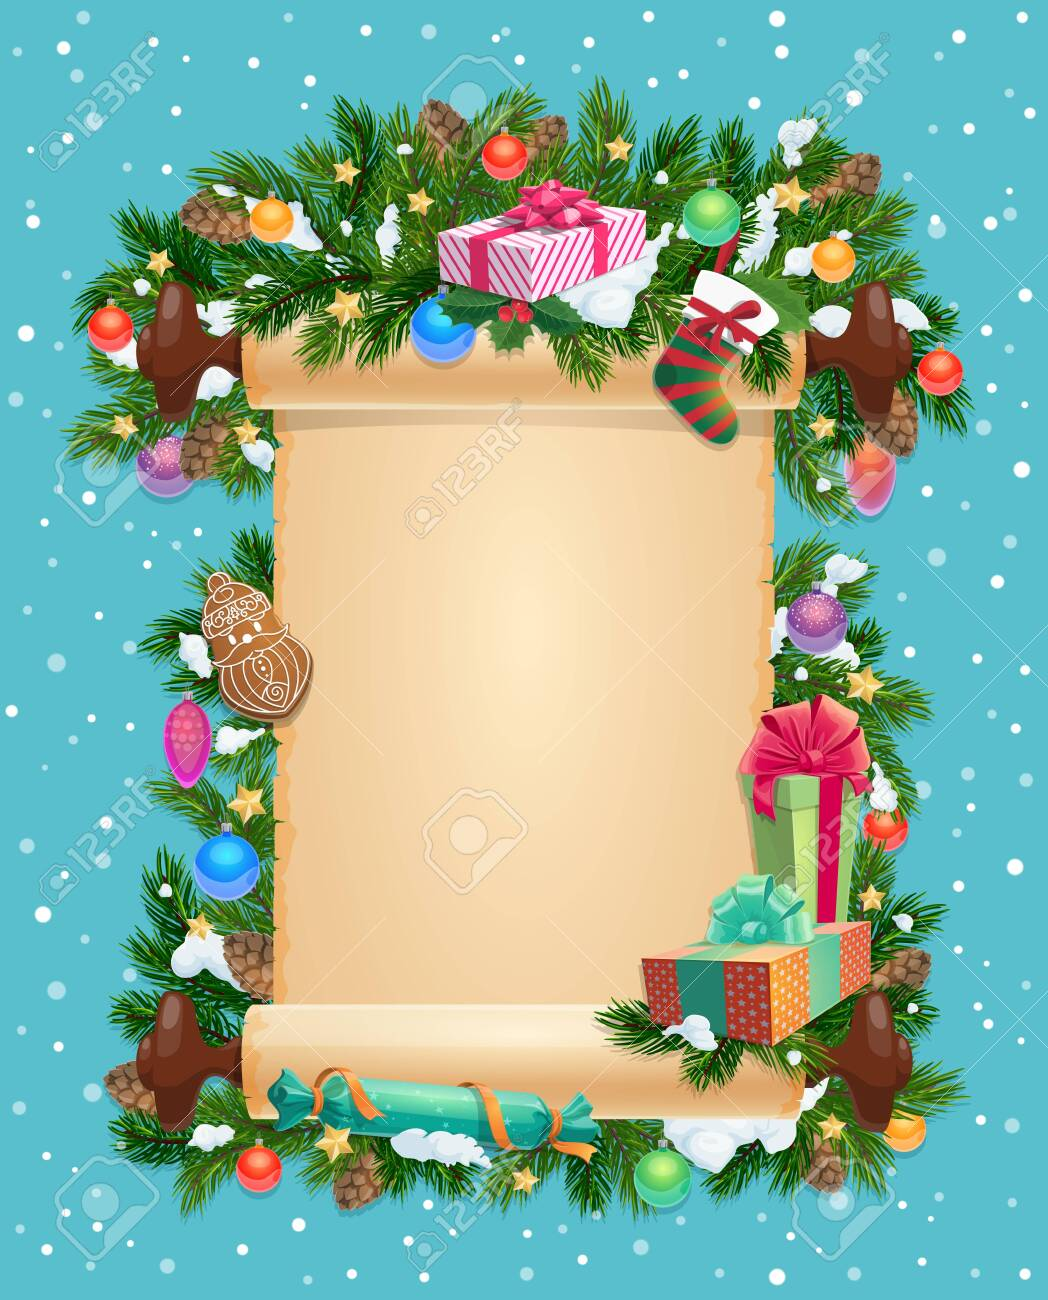 Merry Christmas Card Template Blank Ingot And Winter Holiday